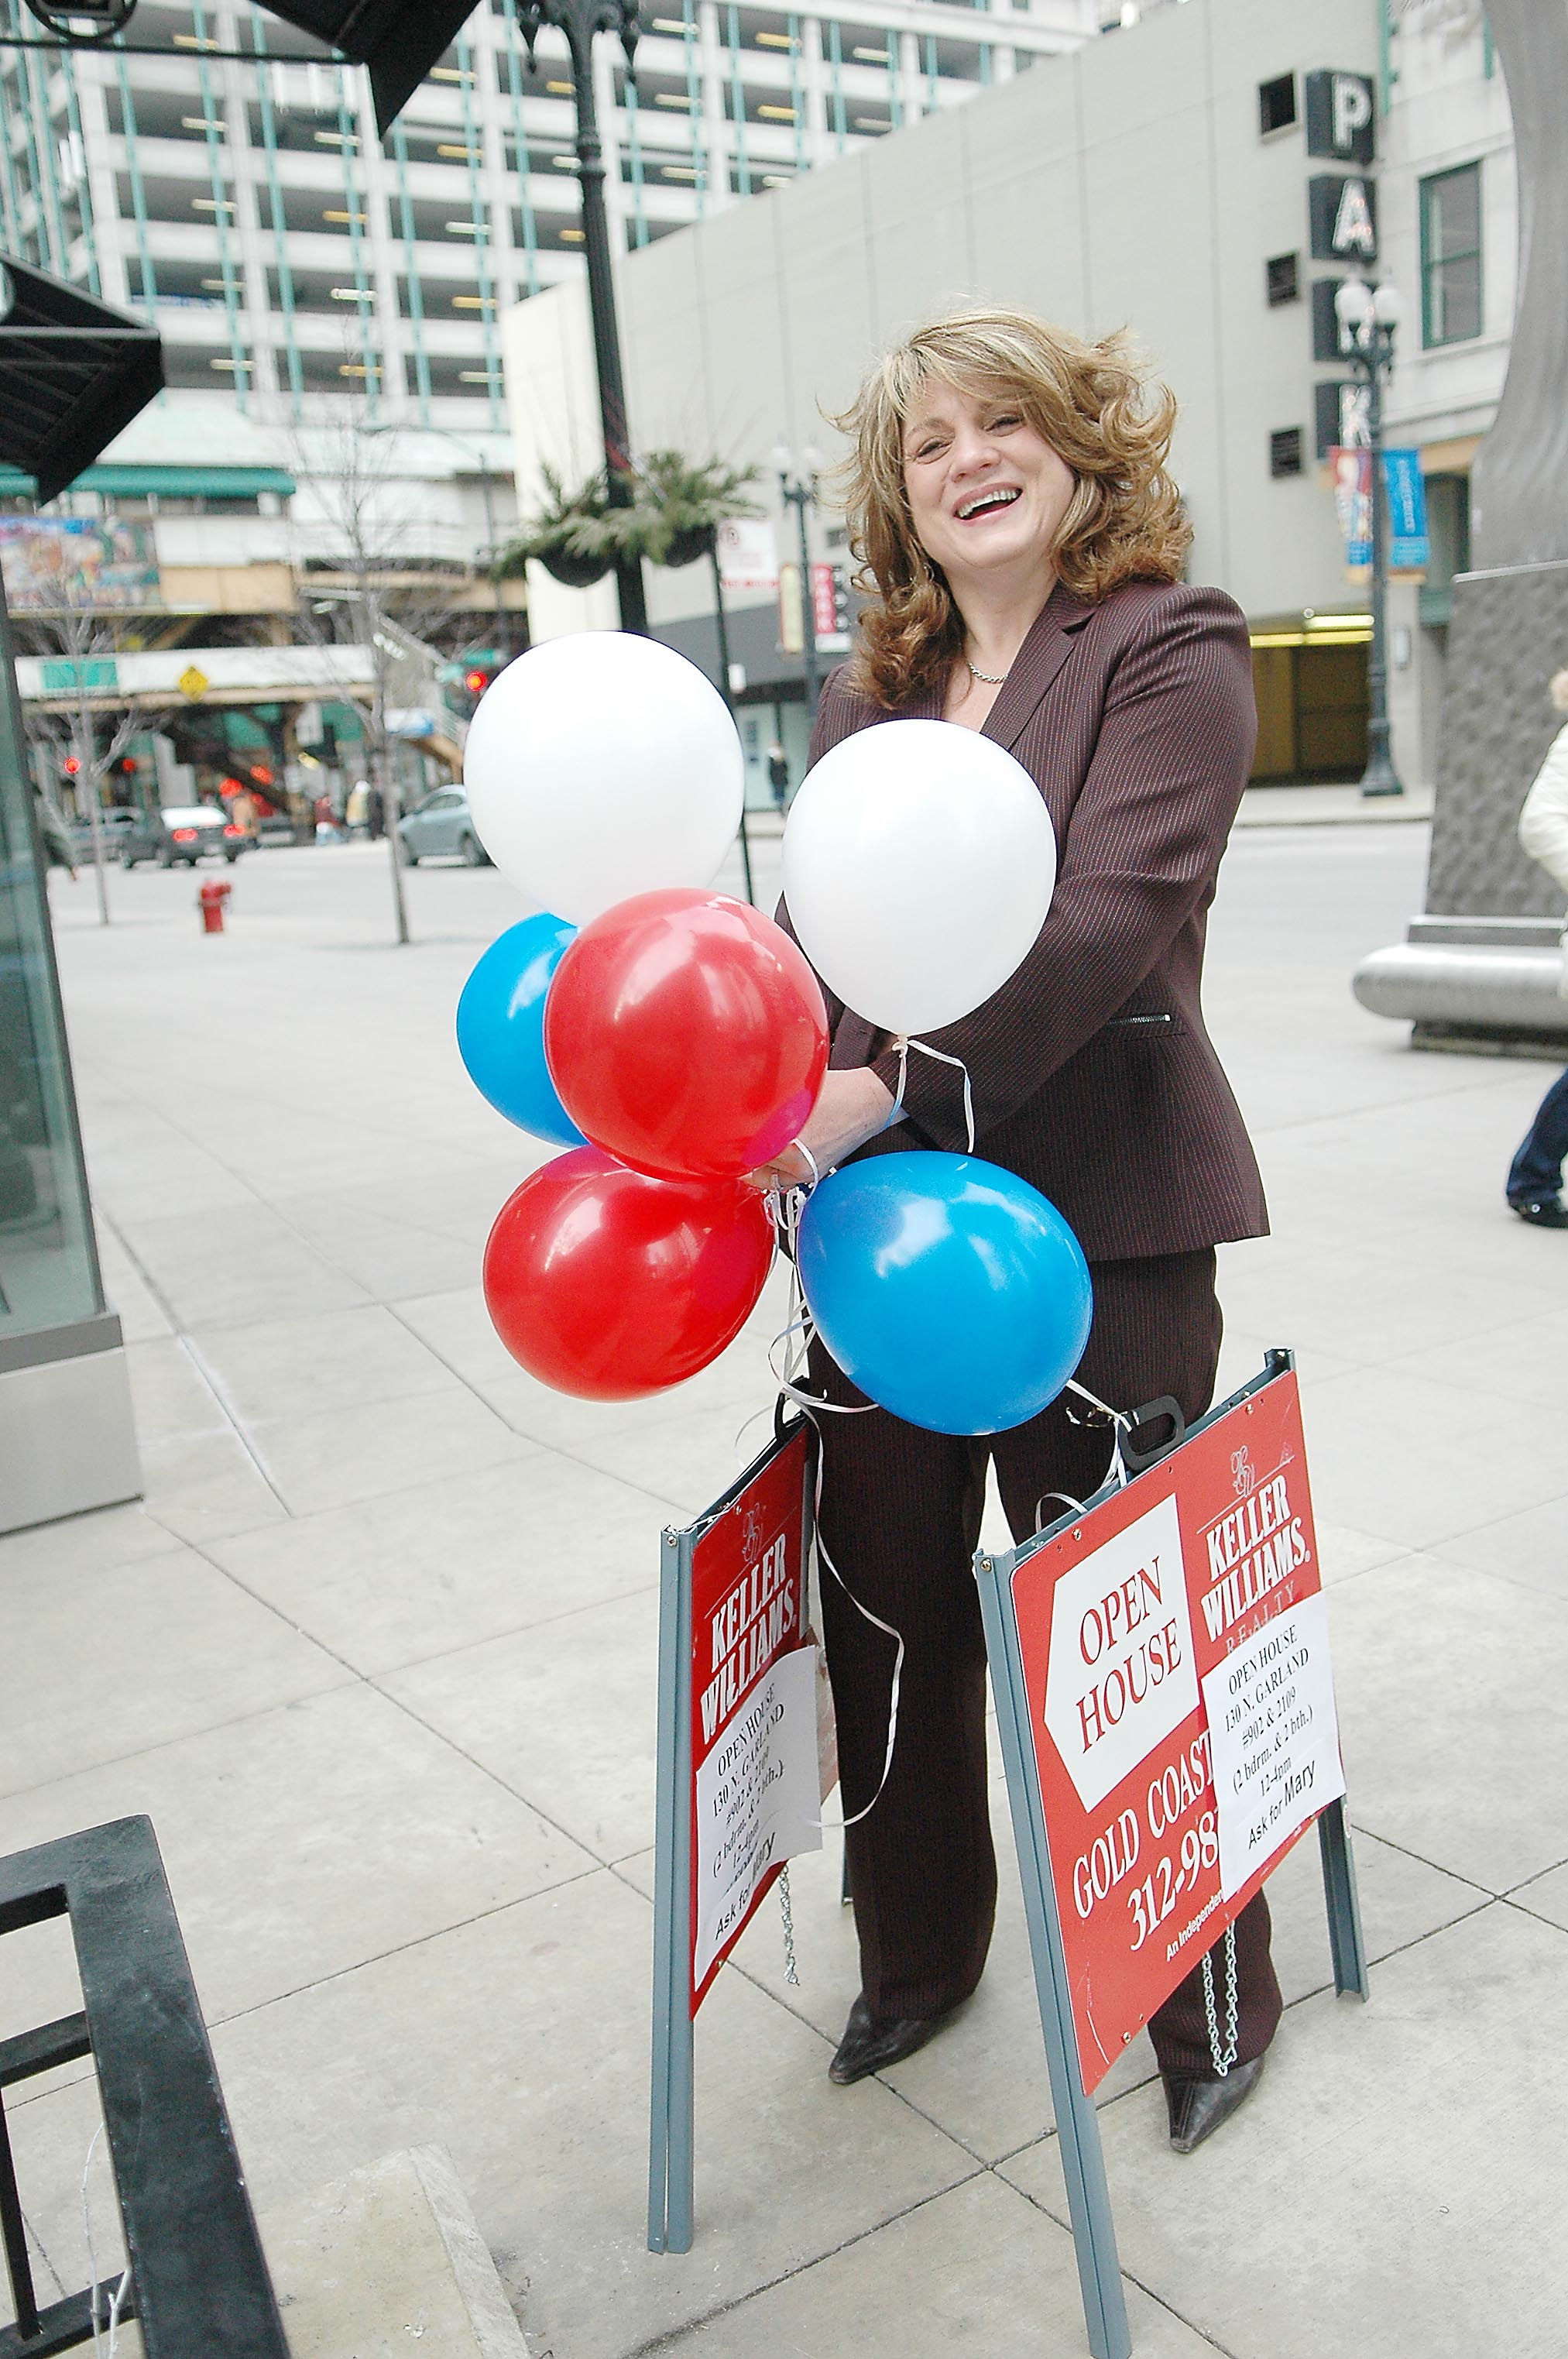 On Washington Street, Keller Williams agent Mary Vallender struggles with balloons advertising an open house at The Heritage at Millennium Park, 130 N Garland Ct.